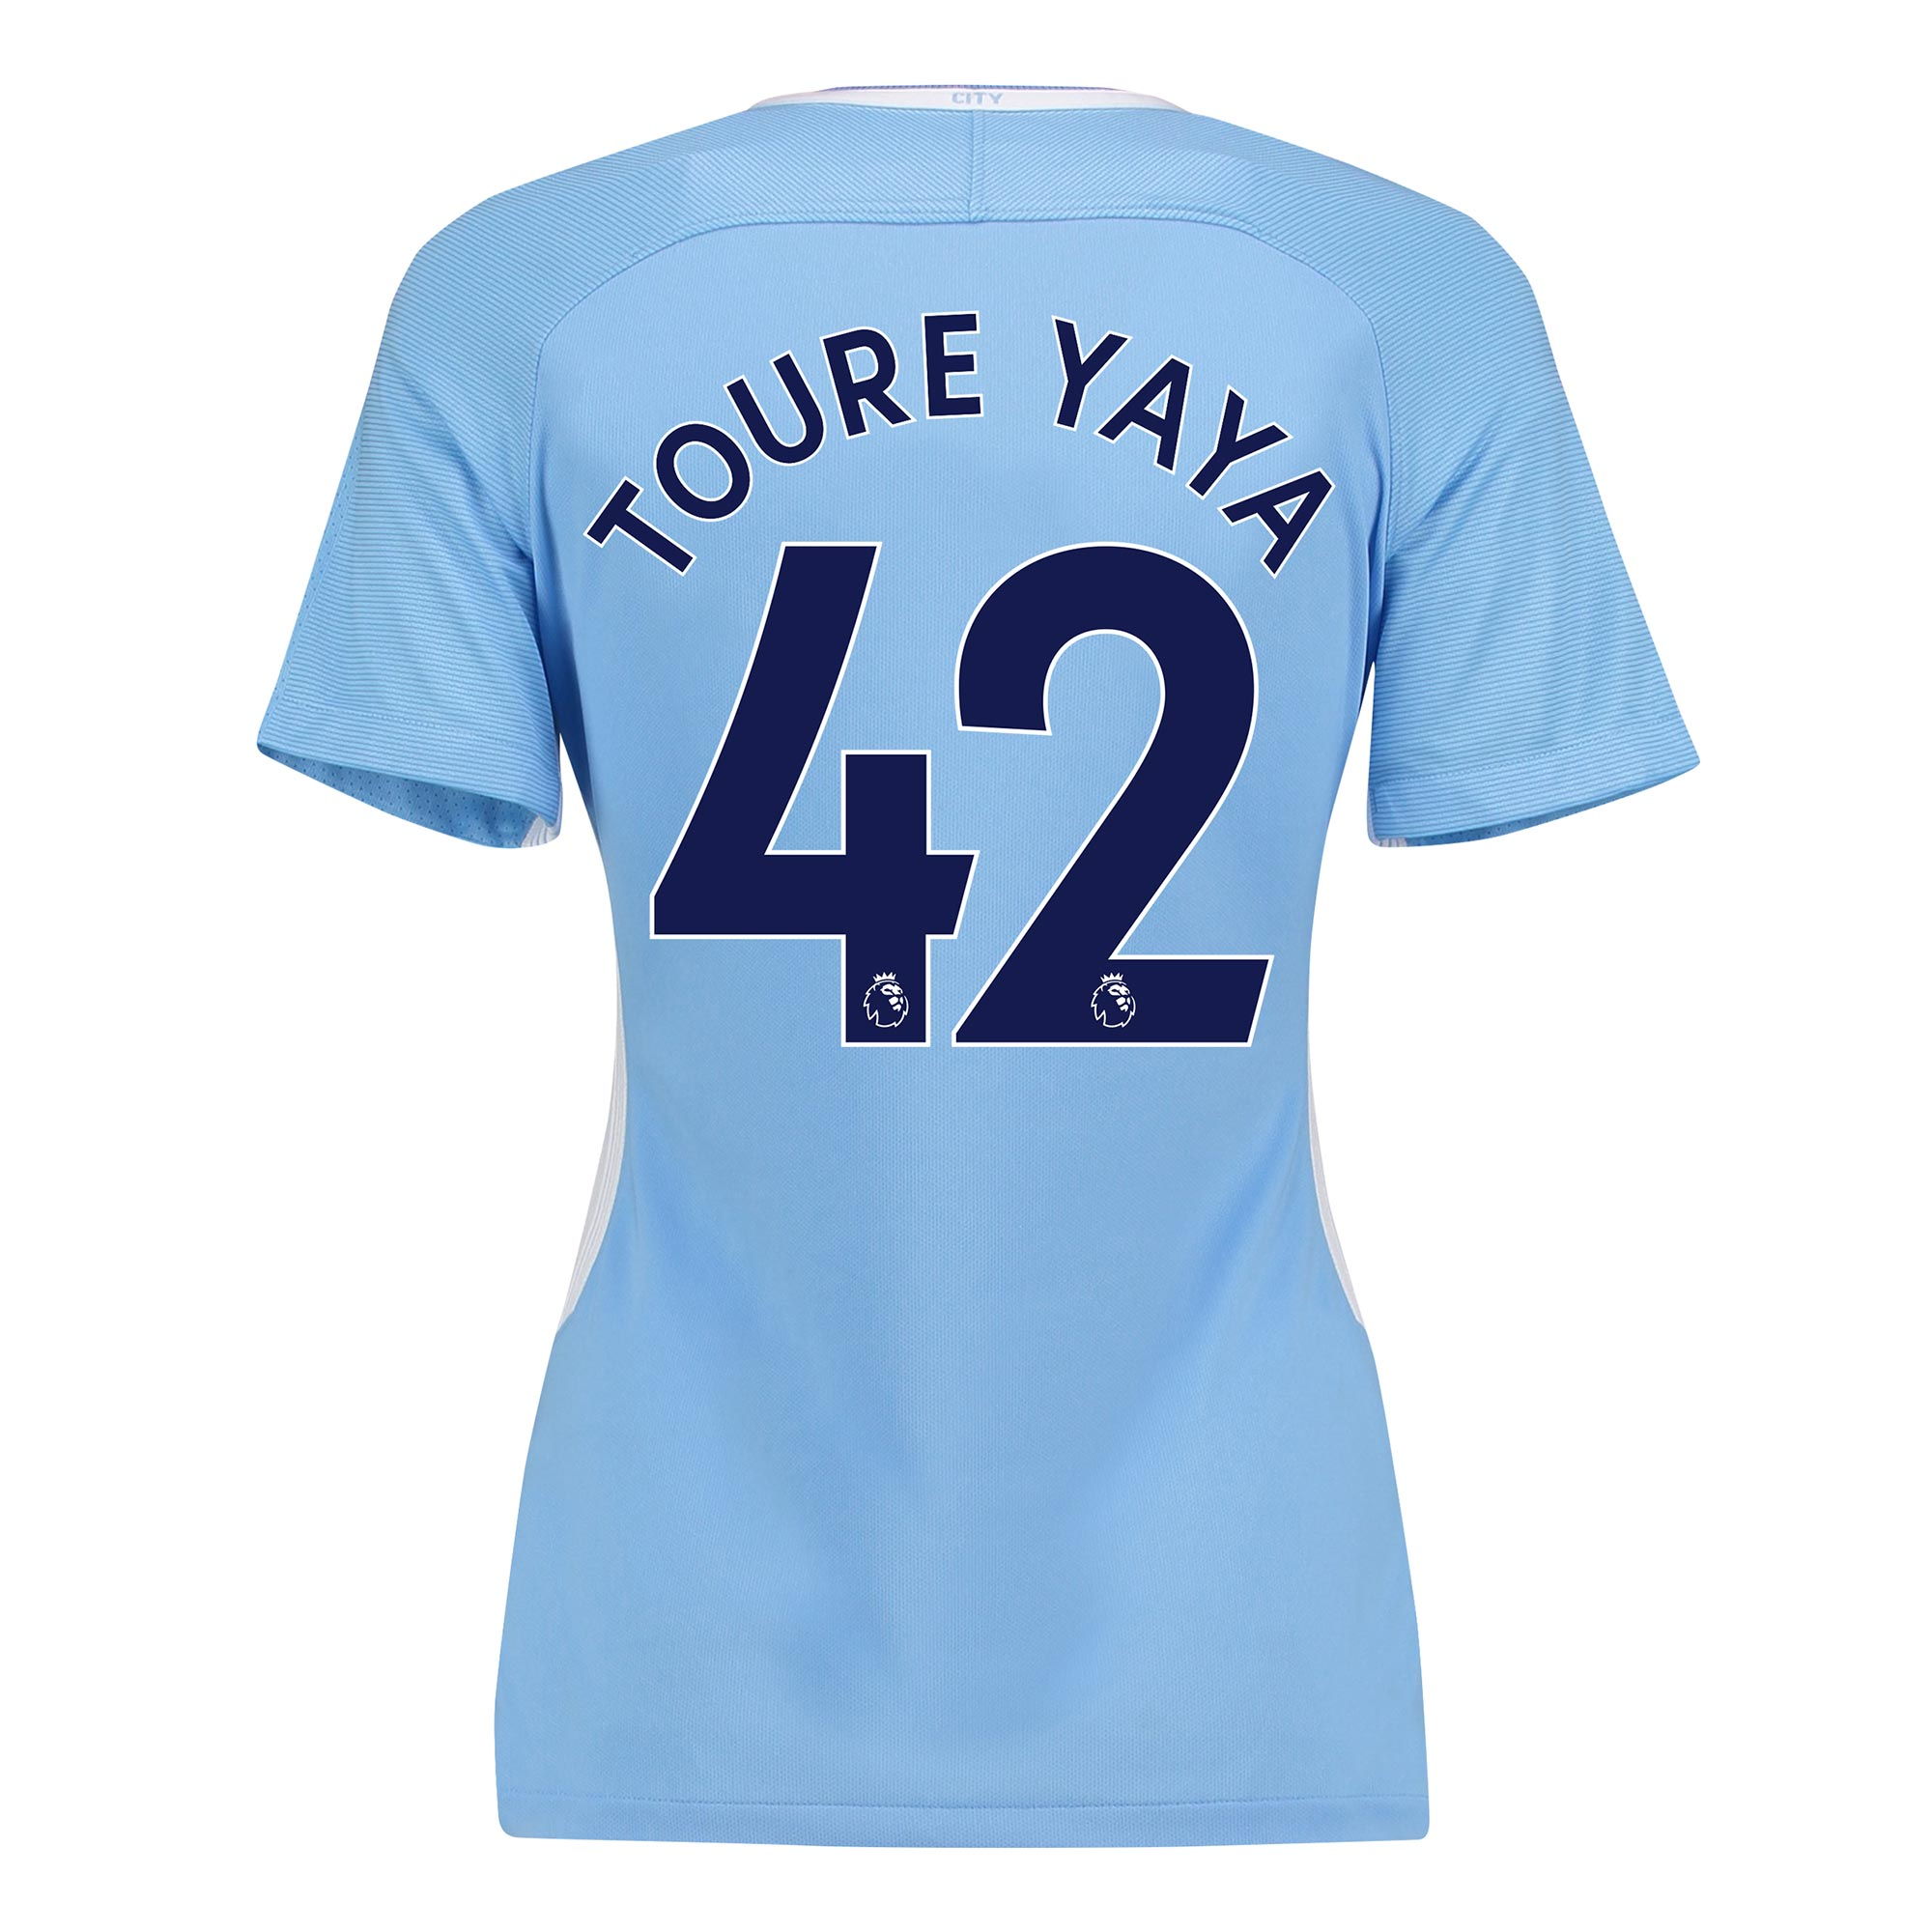 Manchester City Home Stadium Shirt 2017-18 - Womens with Toure Yaya 42